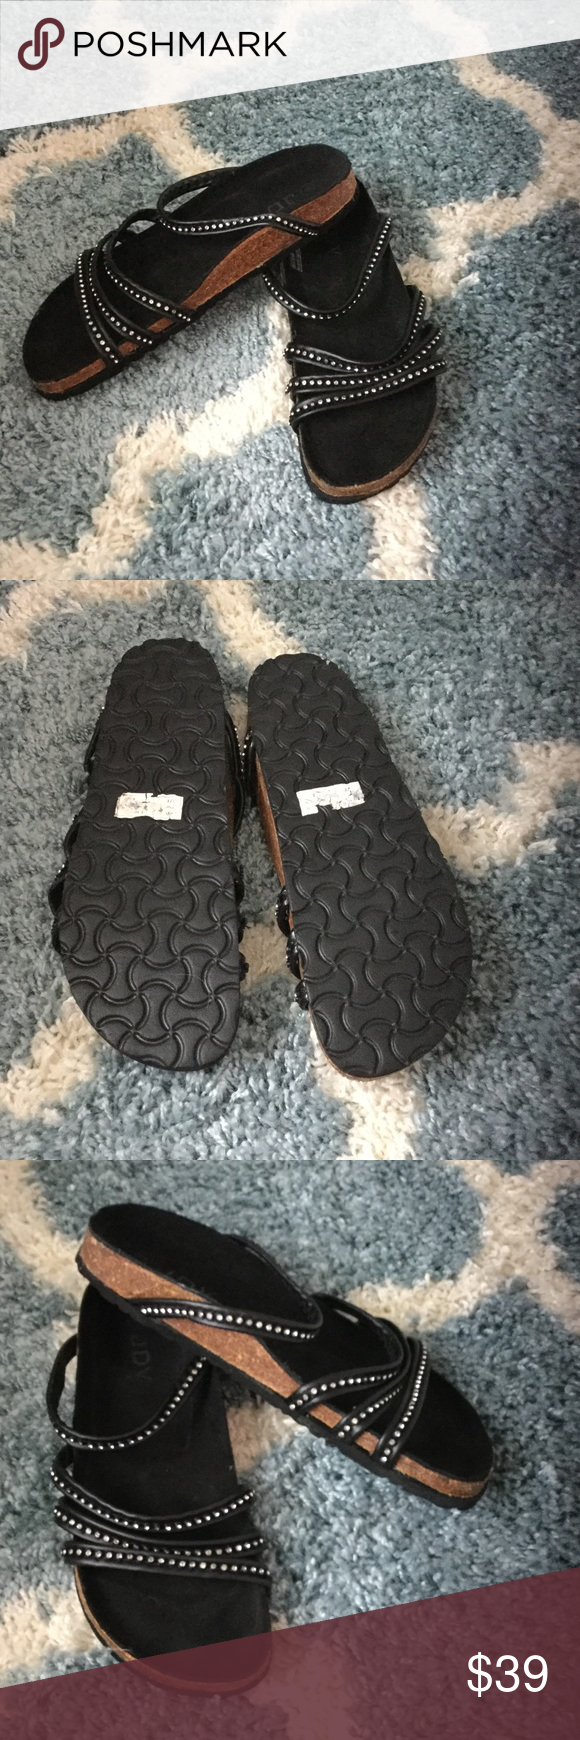 NEW 🎉🎊🎀🎁Sandals size 10 UK 8 New never used not birkenstock but similar style.please check my other 👠 as I have tons of them Birkenstock Shoes Sandals